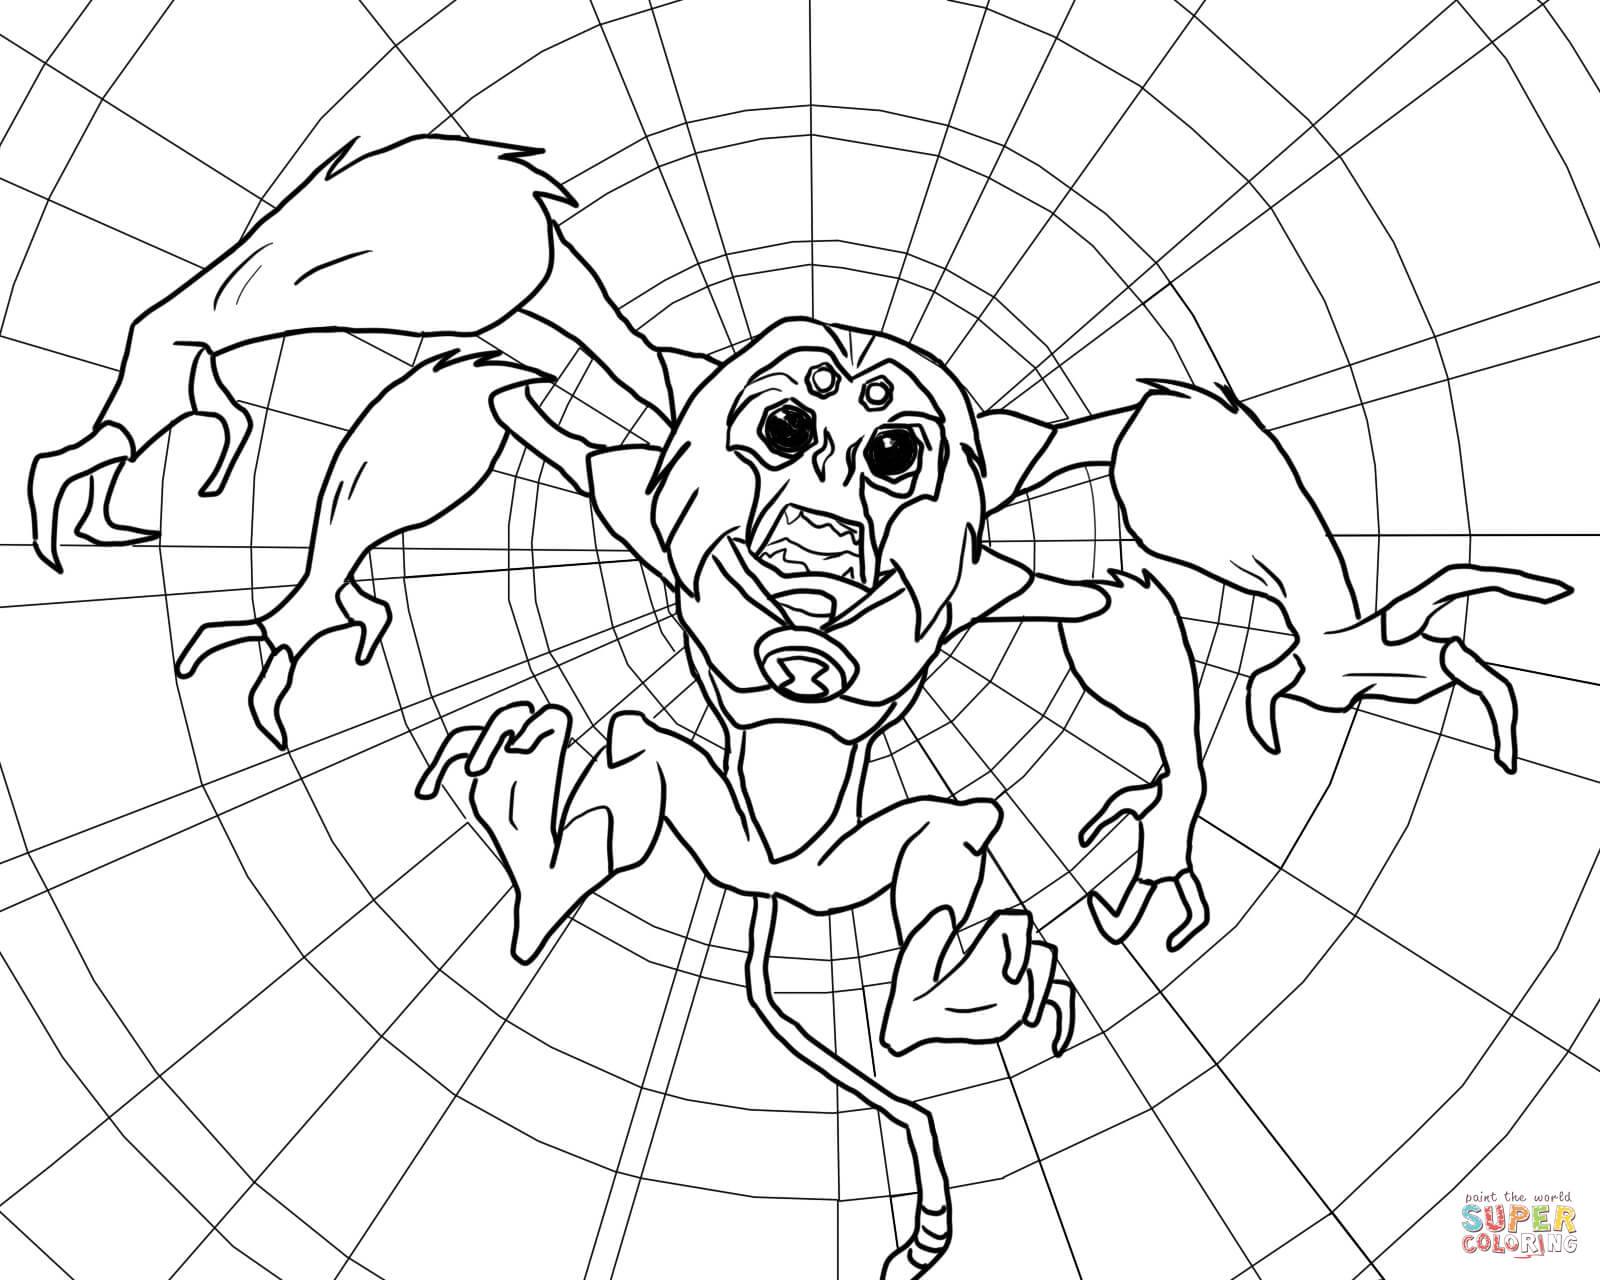 Ben 10 Ultimate Alien Coloring Pages At Getdrawings Com Free For